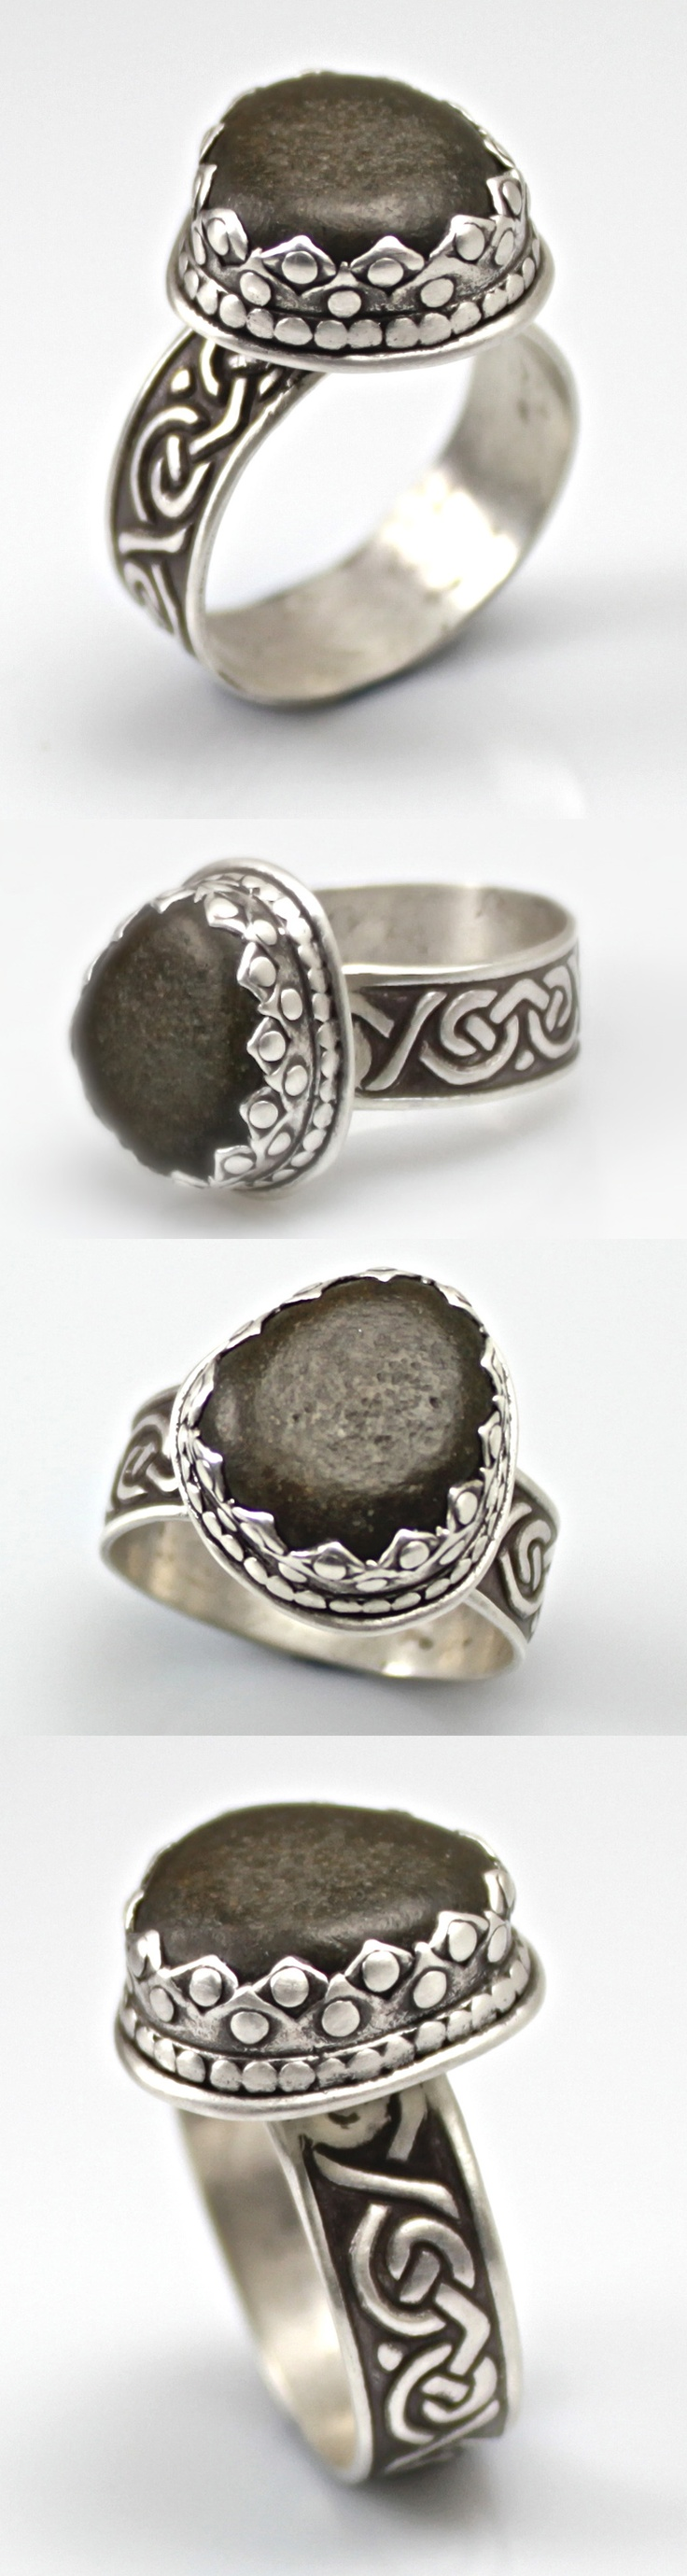 Beul-oideachas Ring by Wanaree Tanner  Original knot work design in sterling silver, custom cut bezel around a beach stone from Ireland.